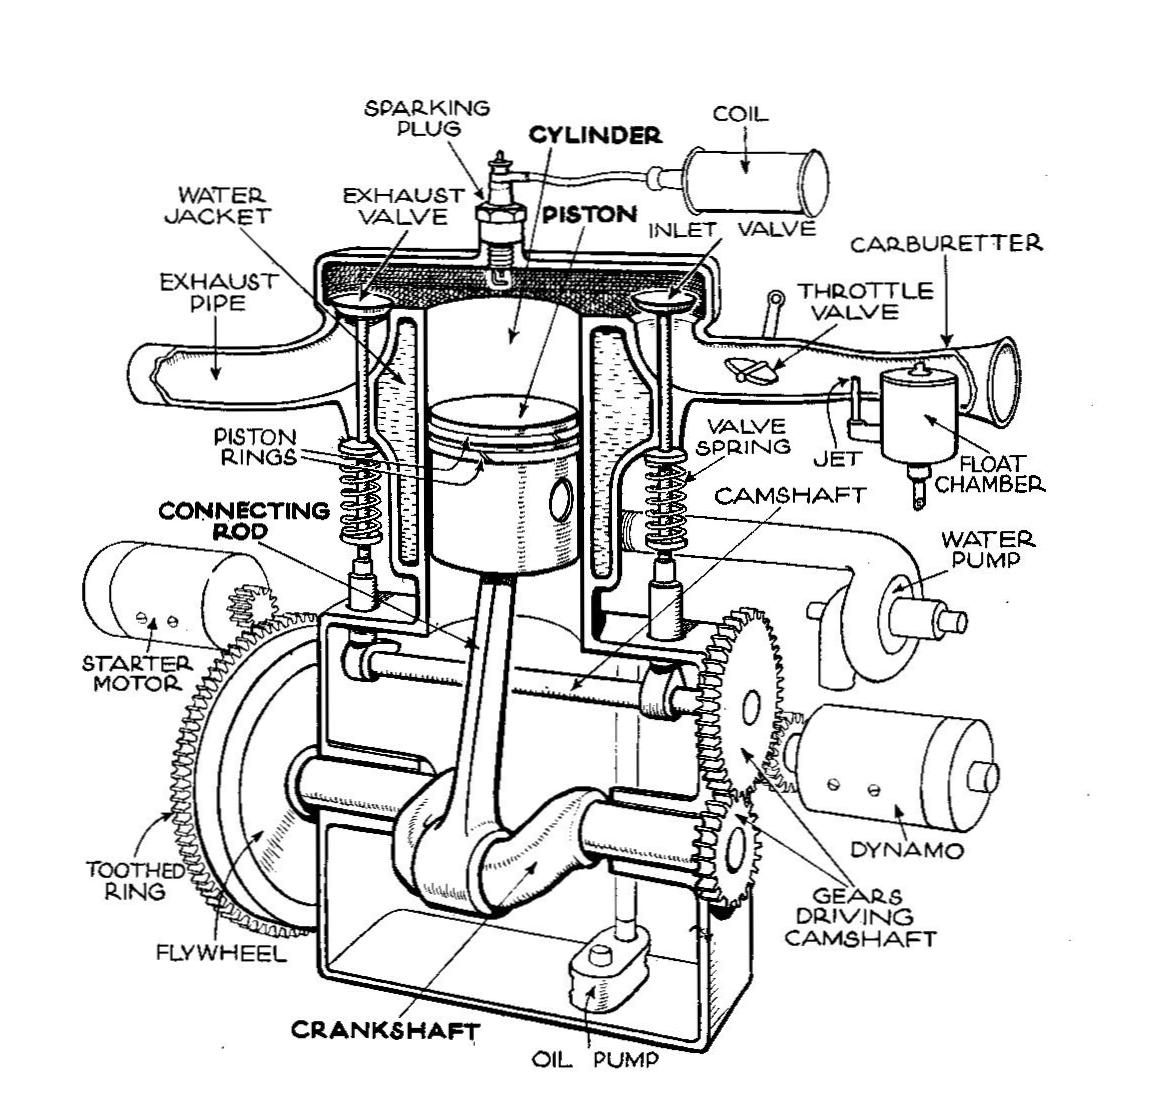 5 Cyl Engine Diagram Wiring Diagrams Jvc R950bt Flathead Wikipedia Rh En Org Volkswagen Cylinder Reliability Mercedes